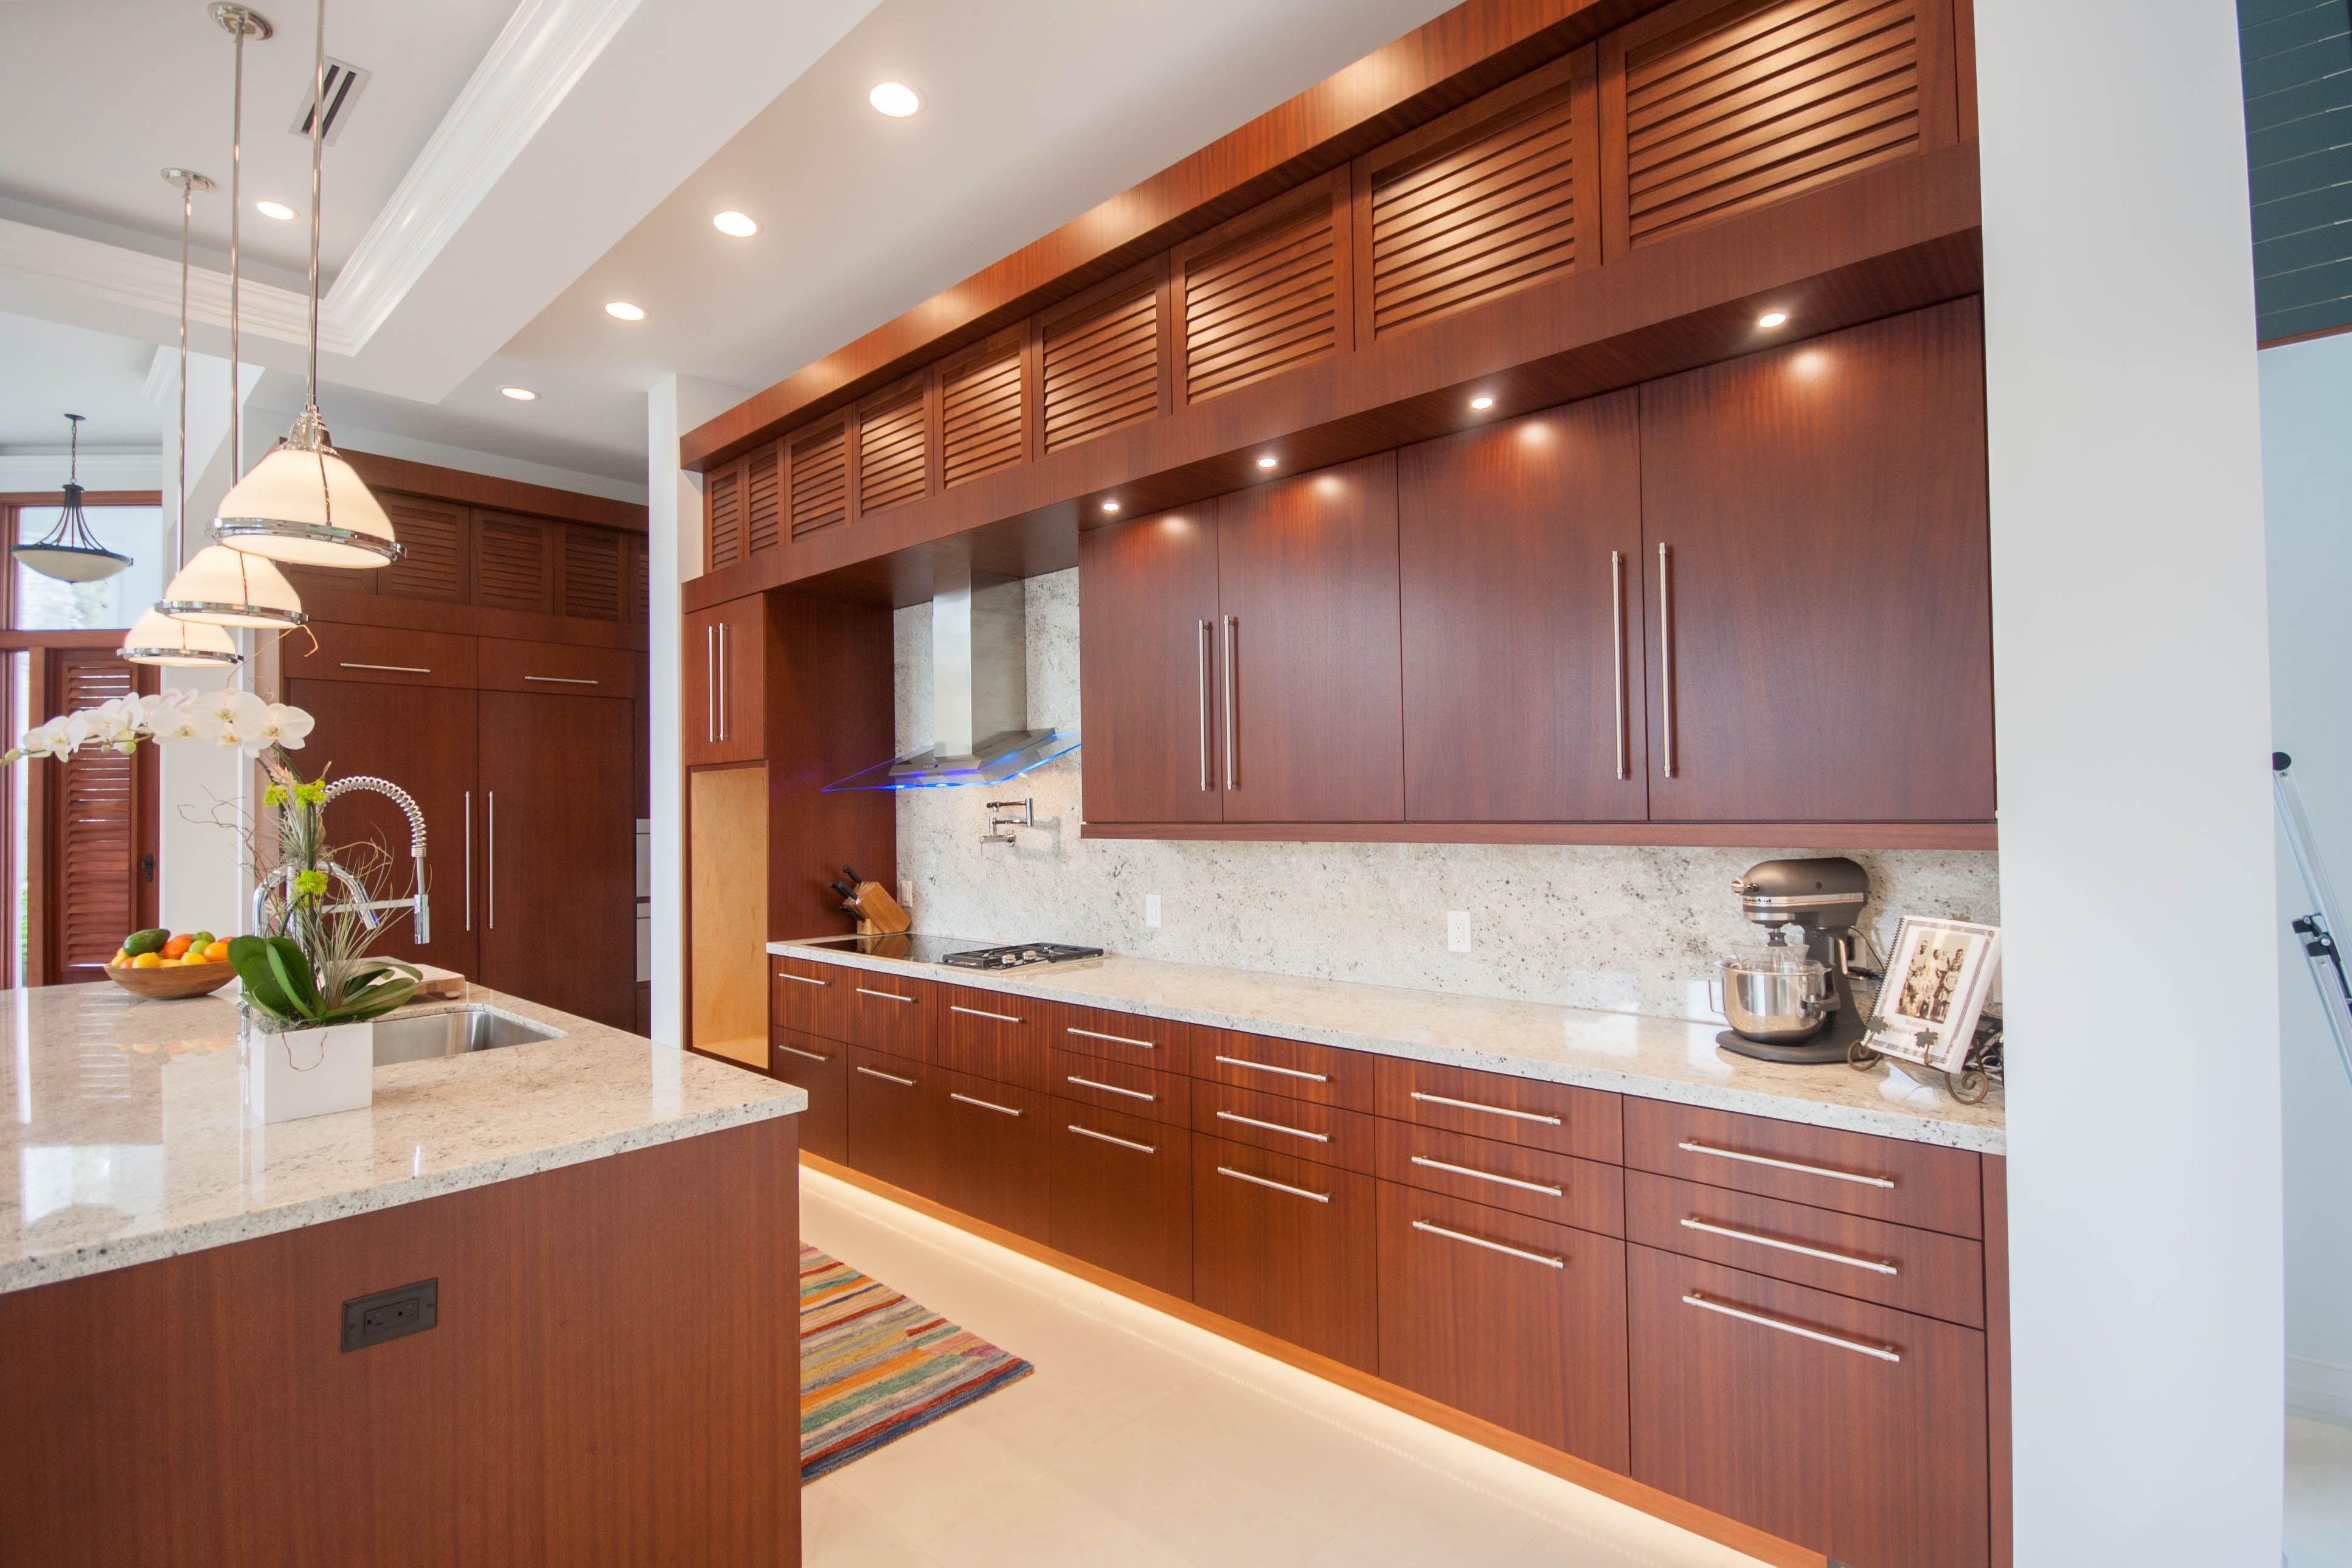 Contemporary Kitchen All Units Are Custom Designed And Manufactured To Fit Your Space C A C Custom Artisan Cabi Kitchen Kitchen And Bath Contemporary Kitchen